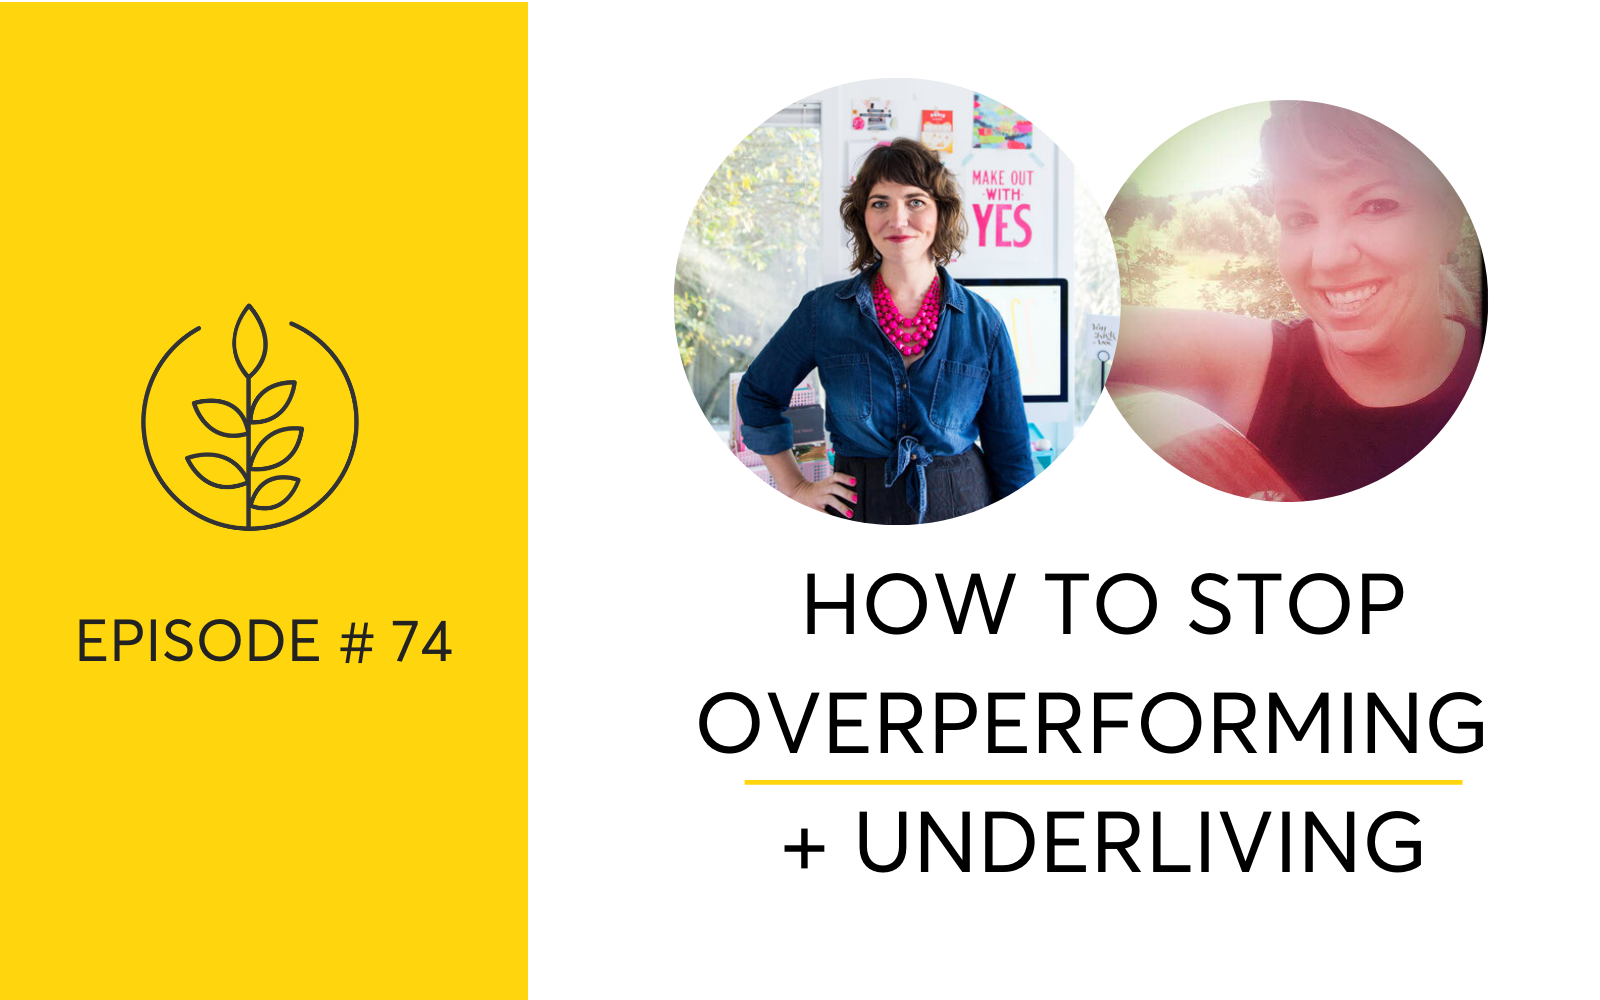 How To Stop Overperforming, Overdrinking And Underliving